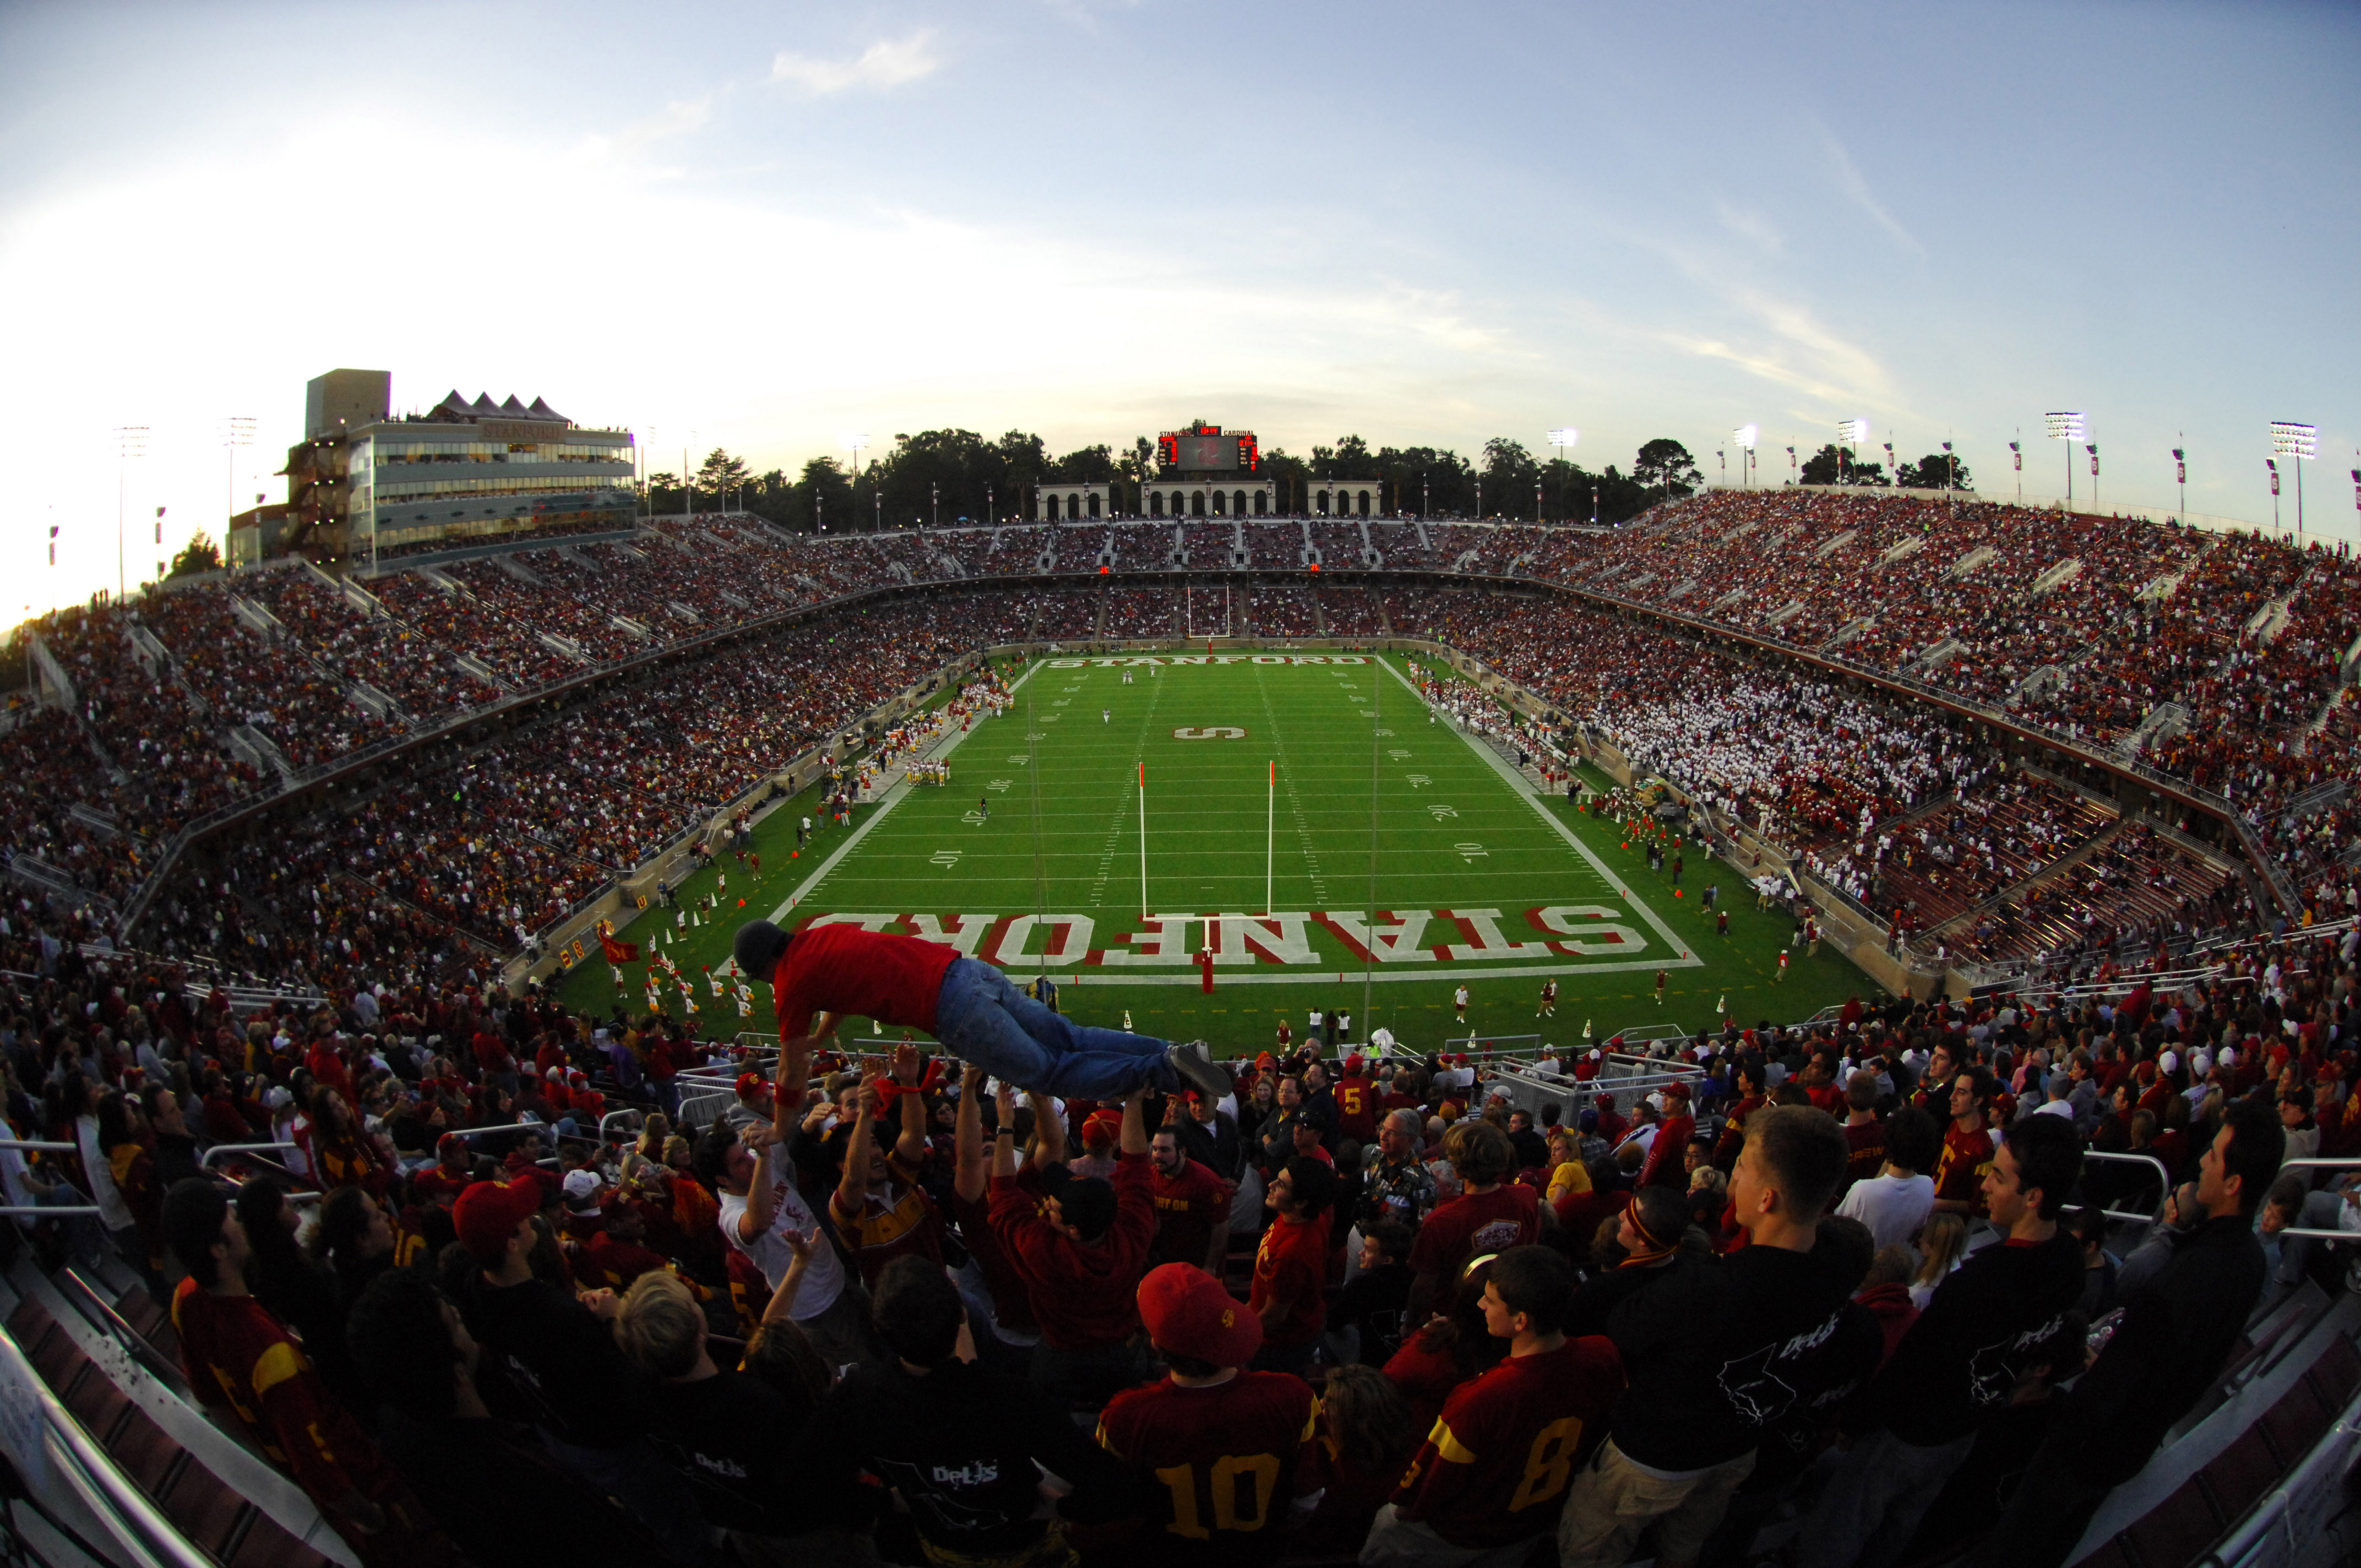 Home of the Stanford University Cardinals, the field opened in 1921. Besides hosting Super Bowl XIX, the field saw some World Cup soccer action in 1994.